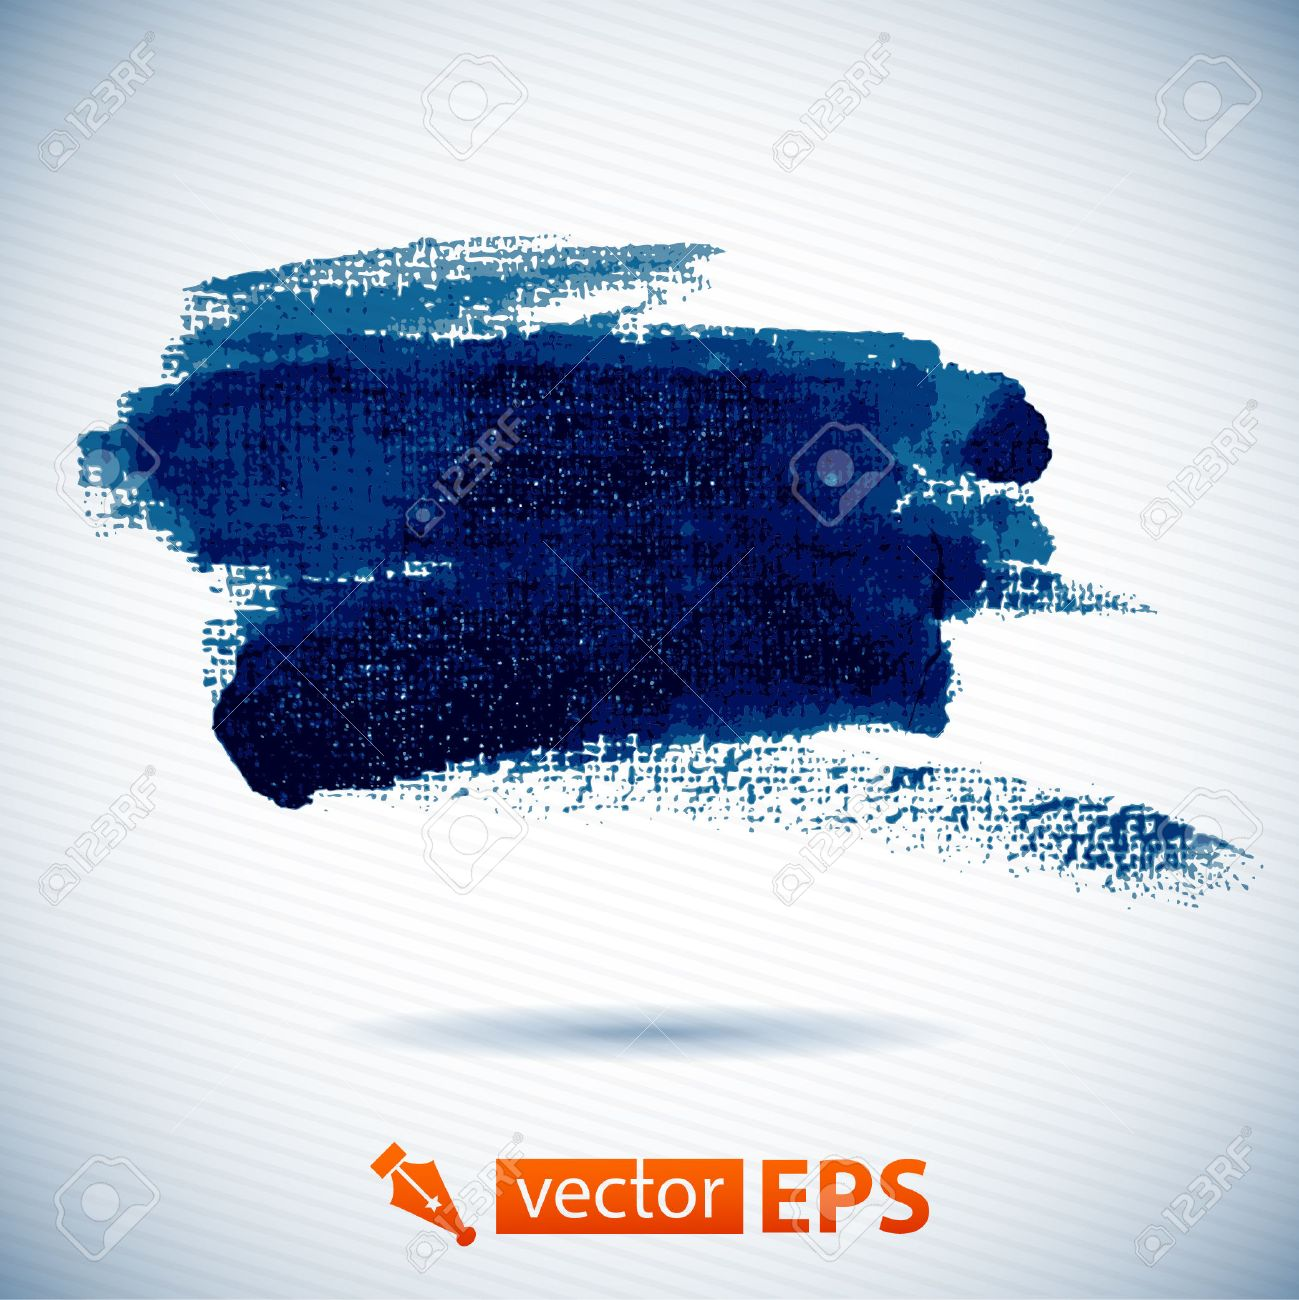 Vector watercolor ink spot  Blue wet brushstroke on canvas texture   Dry brush strokes   Abstract  omposition for design elements Stock Vector - 23103259